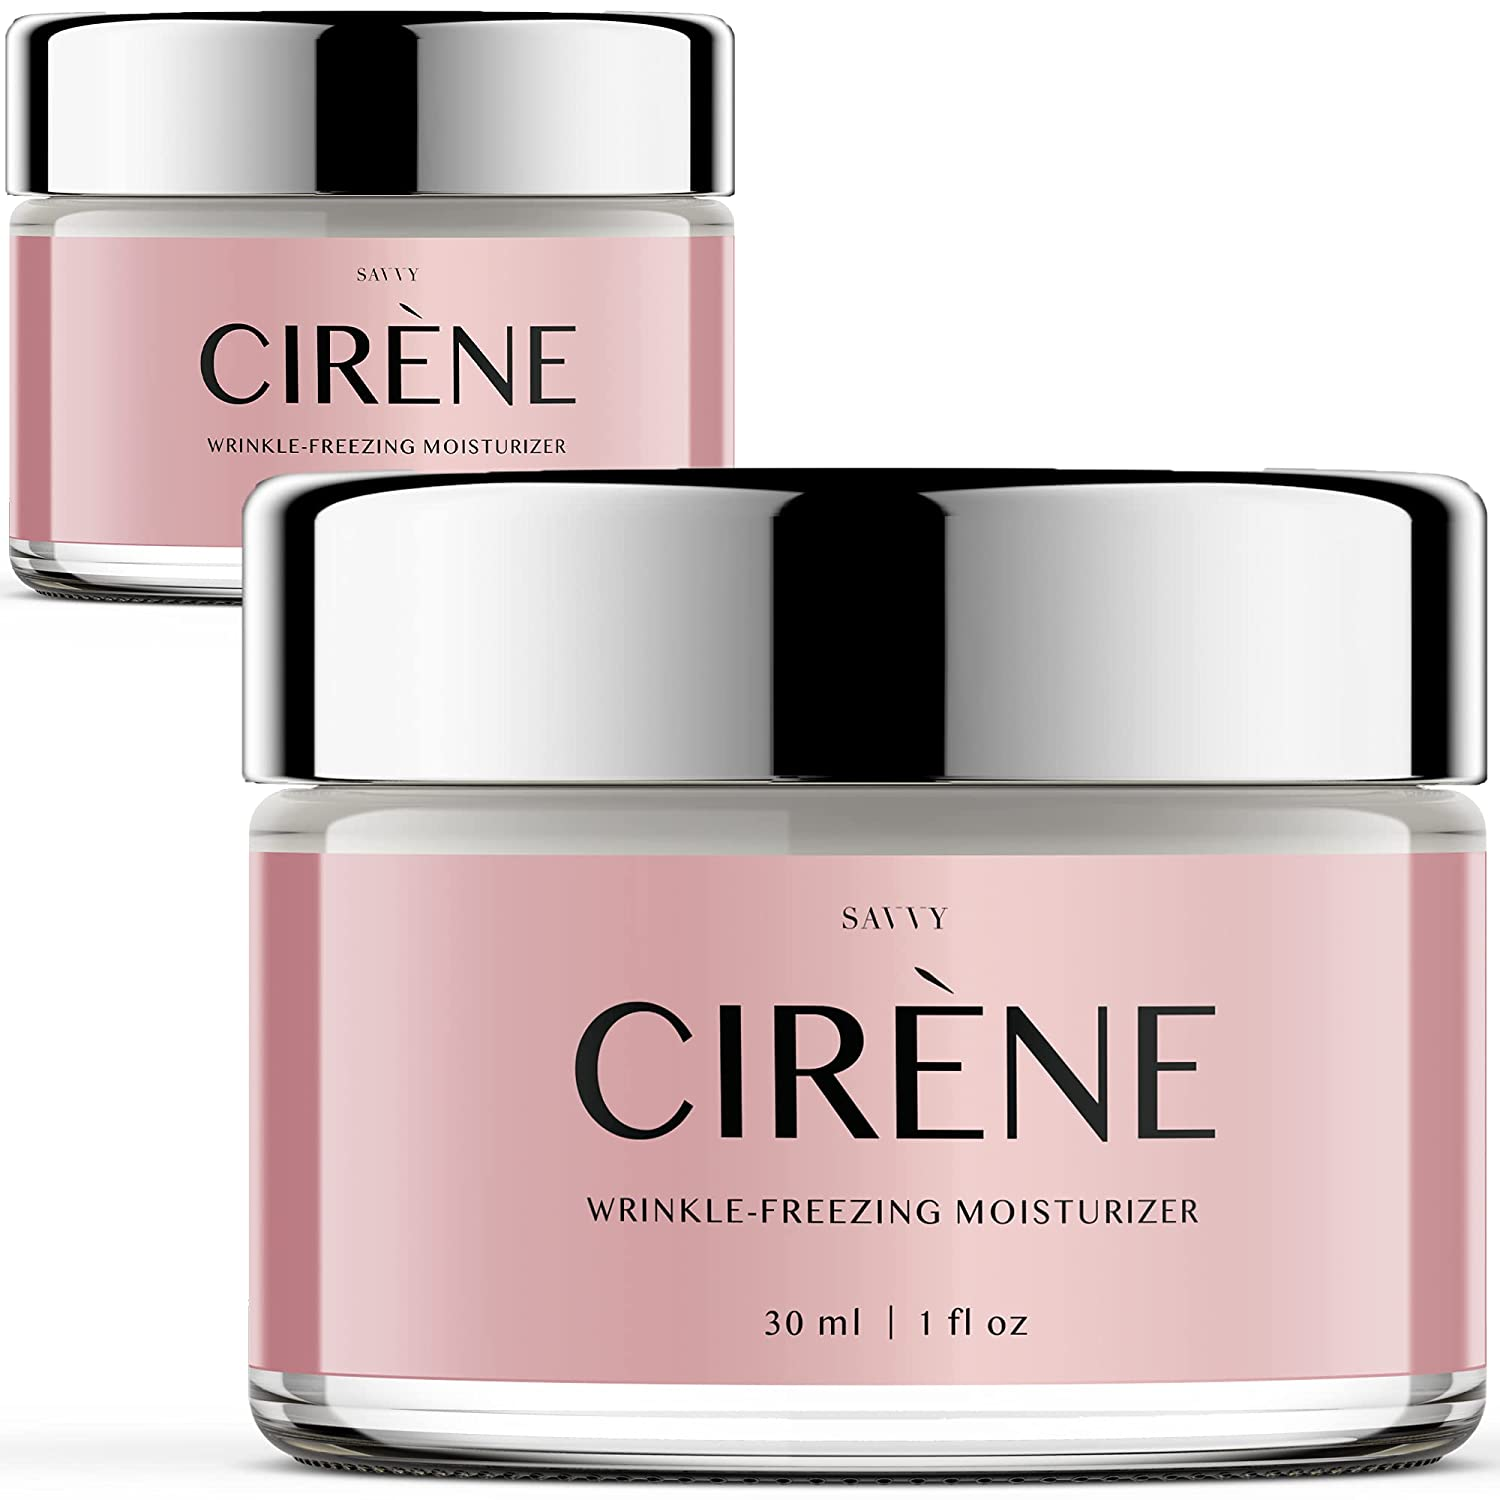 Max 44% OFF 2 Pack Cirene Face Cream Wrinkle-Freezing Skincare OFFicial store Moisturizer